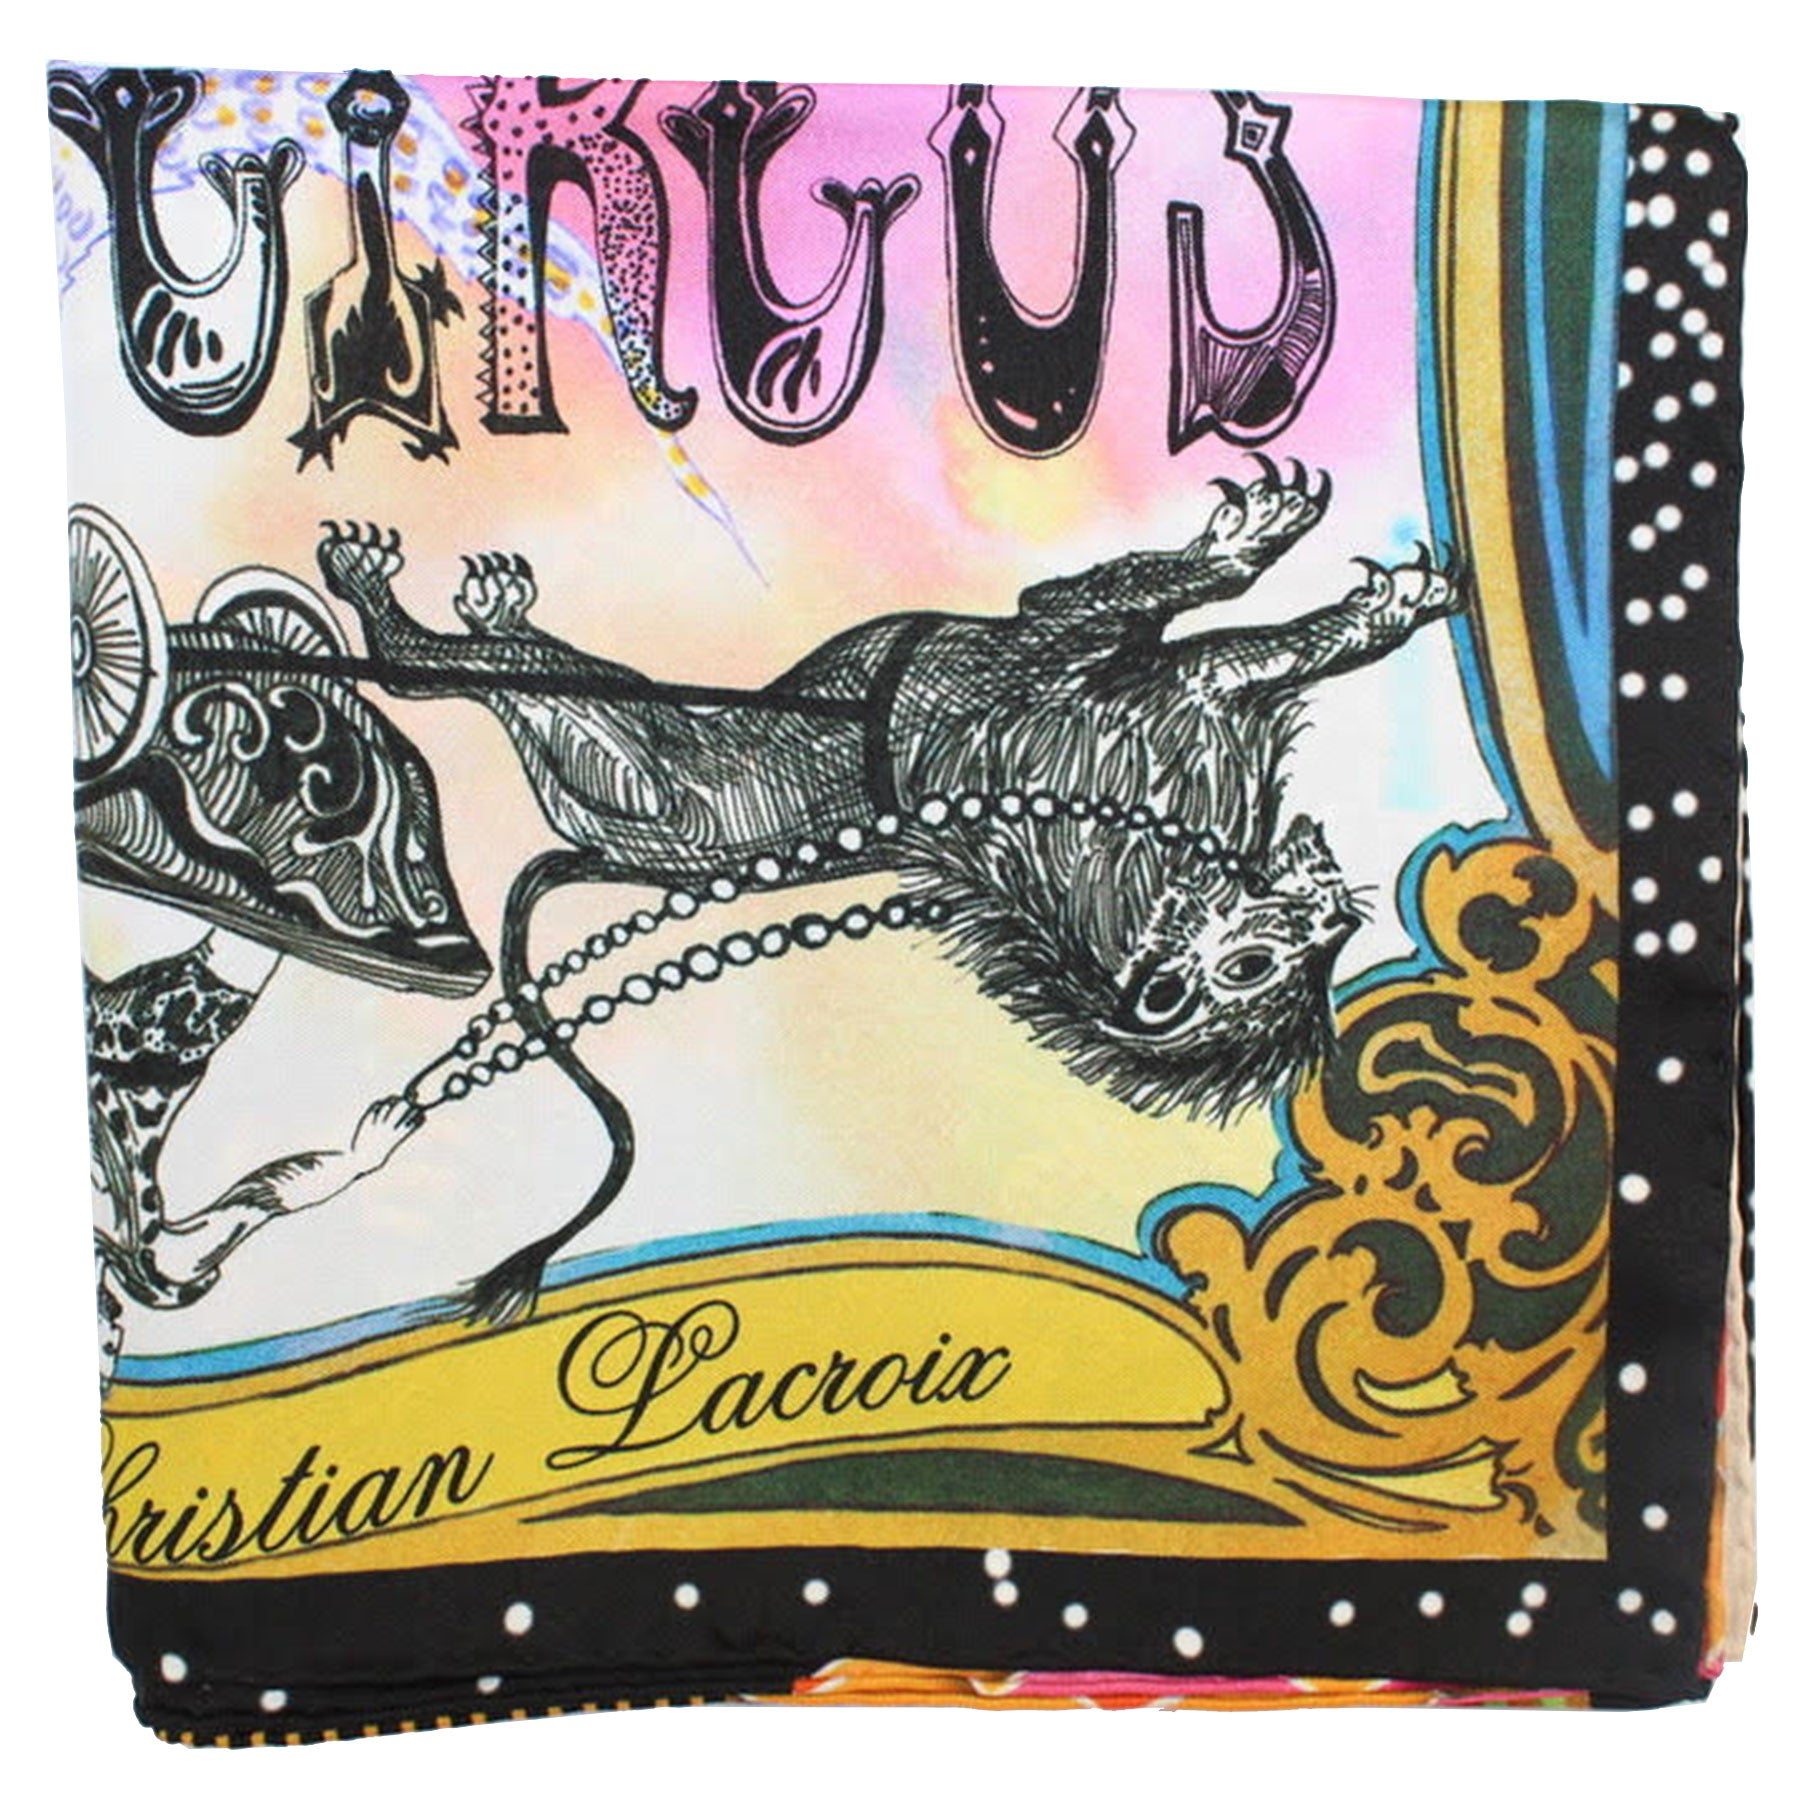 Christian Lacroix Scarf 20 Ans Design Multi color Circus Novelty - Large Twill Silk Square Scarf